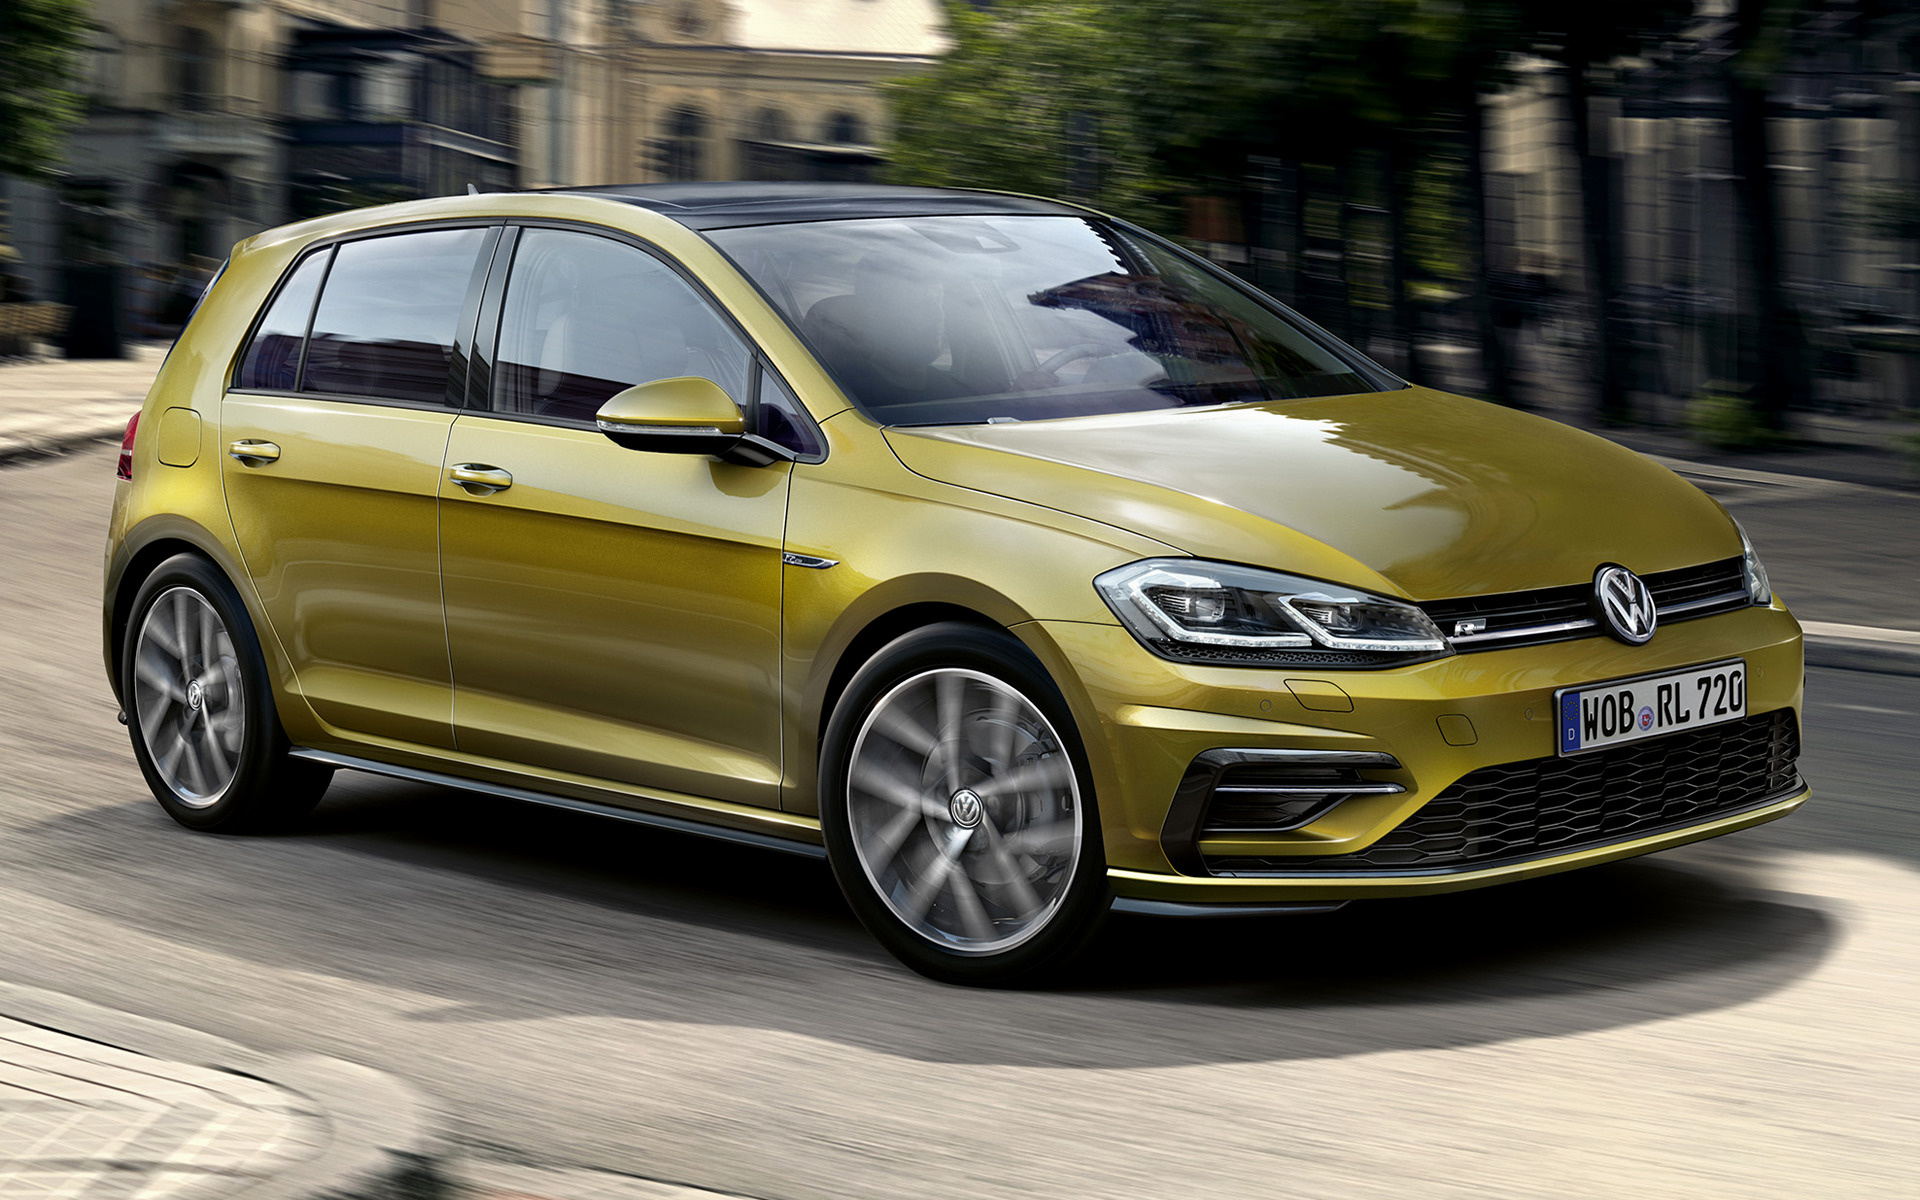 volkswagen golf r line 5 door 2017 wallpapers and hd images car pixel. Black Bedroom Furniture Sets. Home Design Ideas